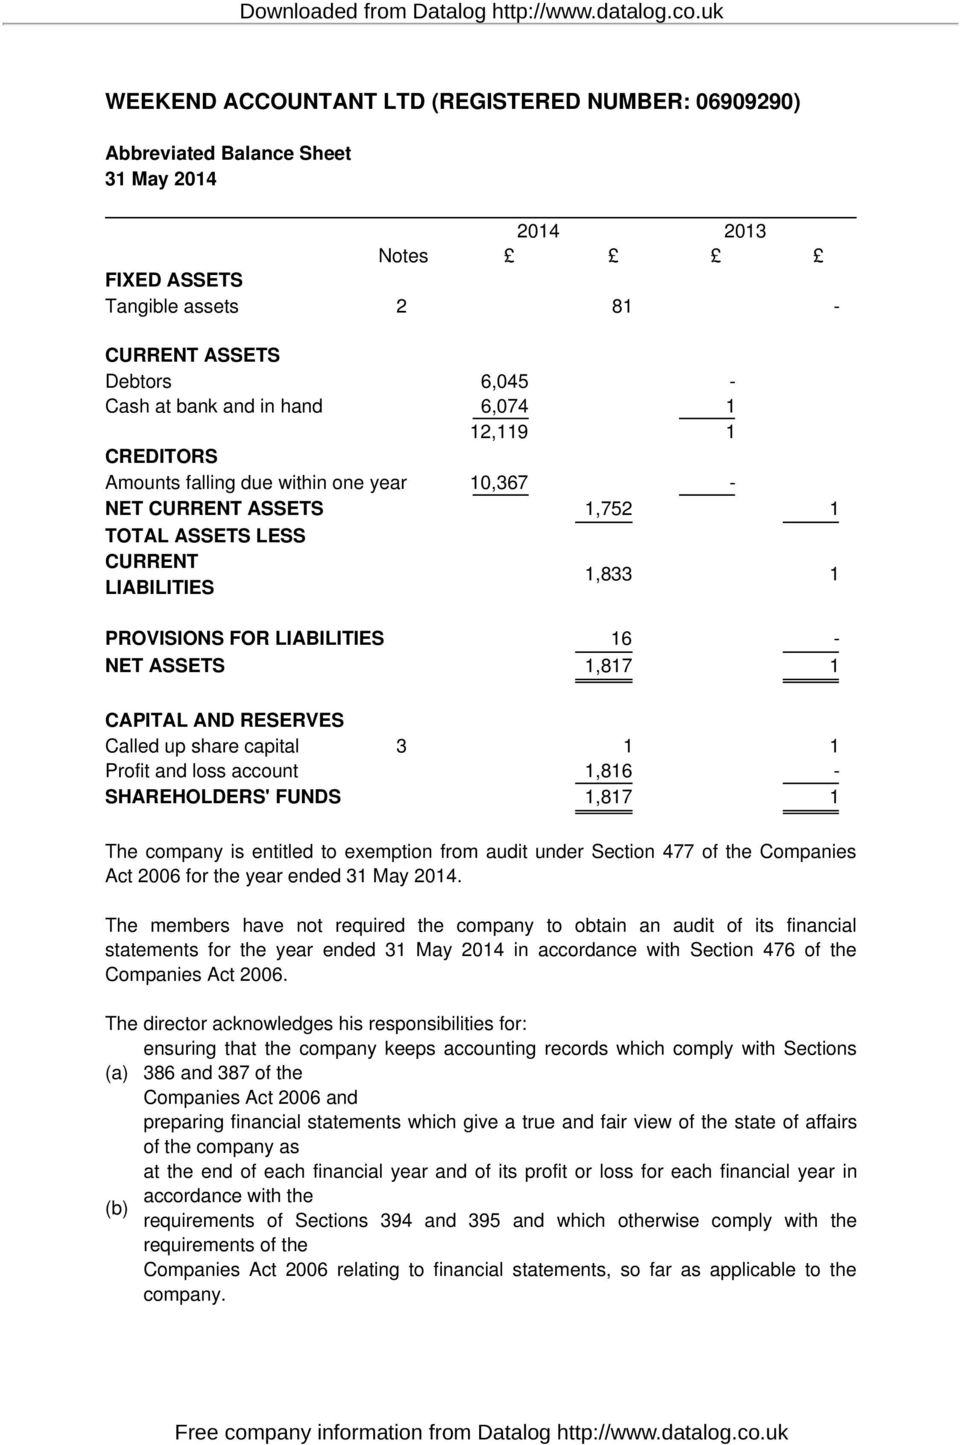 CAPITAL AND RESERVES Called up share capital 3 1 1 Profit and loss account 1,816 - SHAREHOLDERS' FUNDS 1,817 1 The company is entitled to exemption from audit under Section 477 of the Companies Act